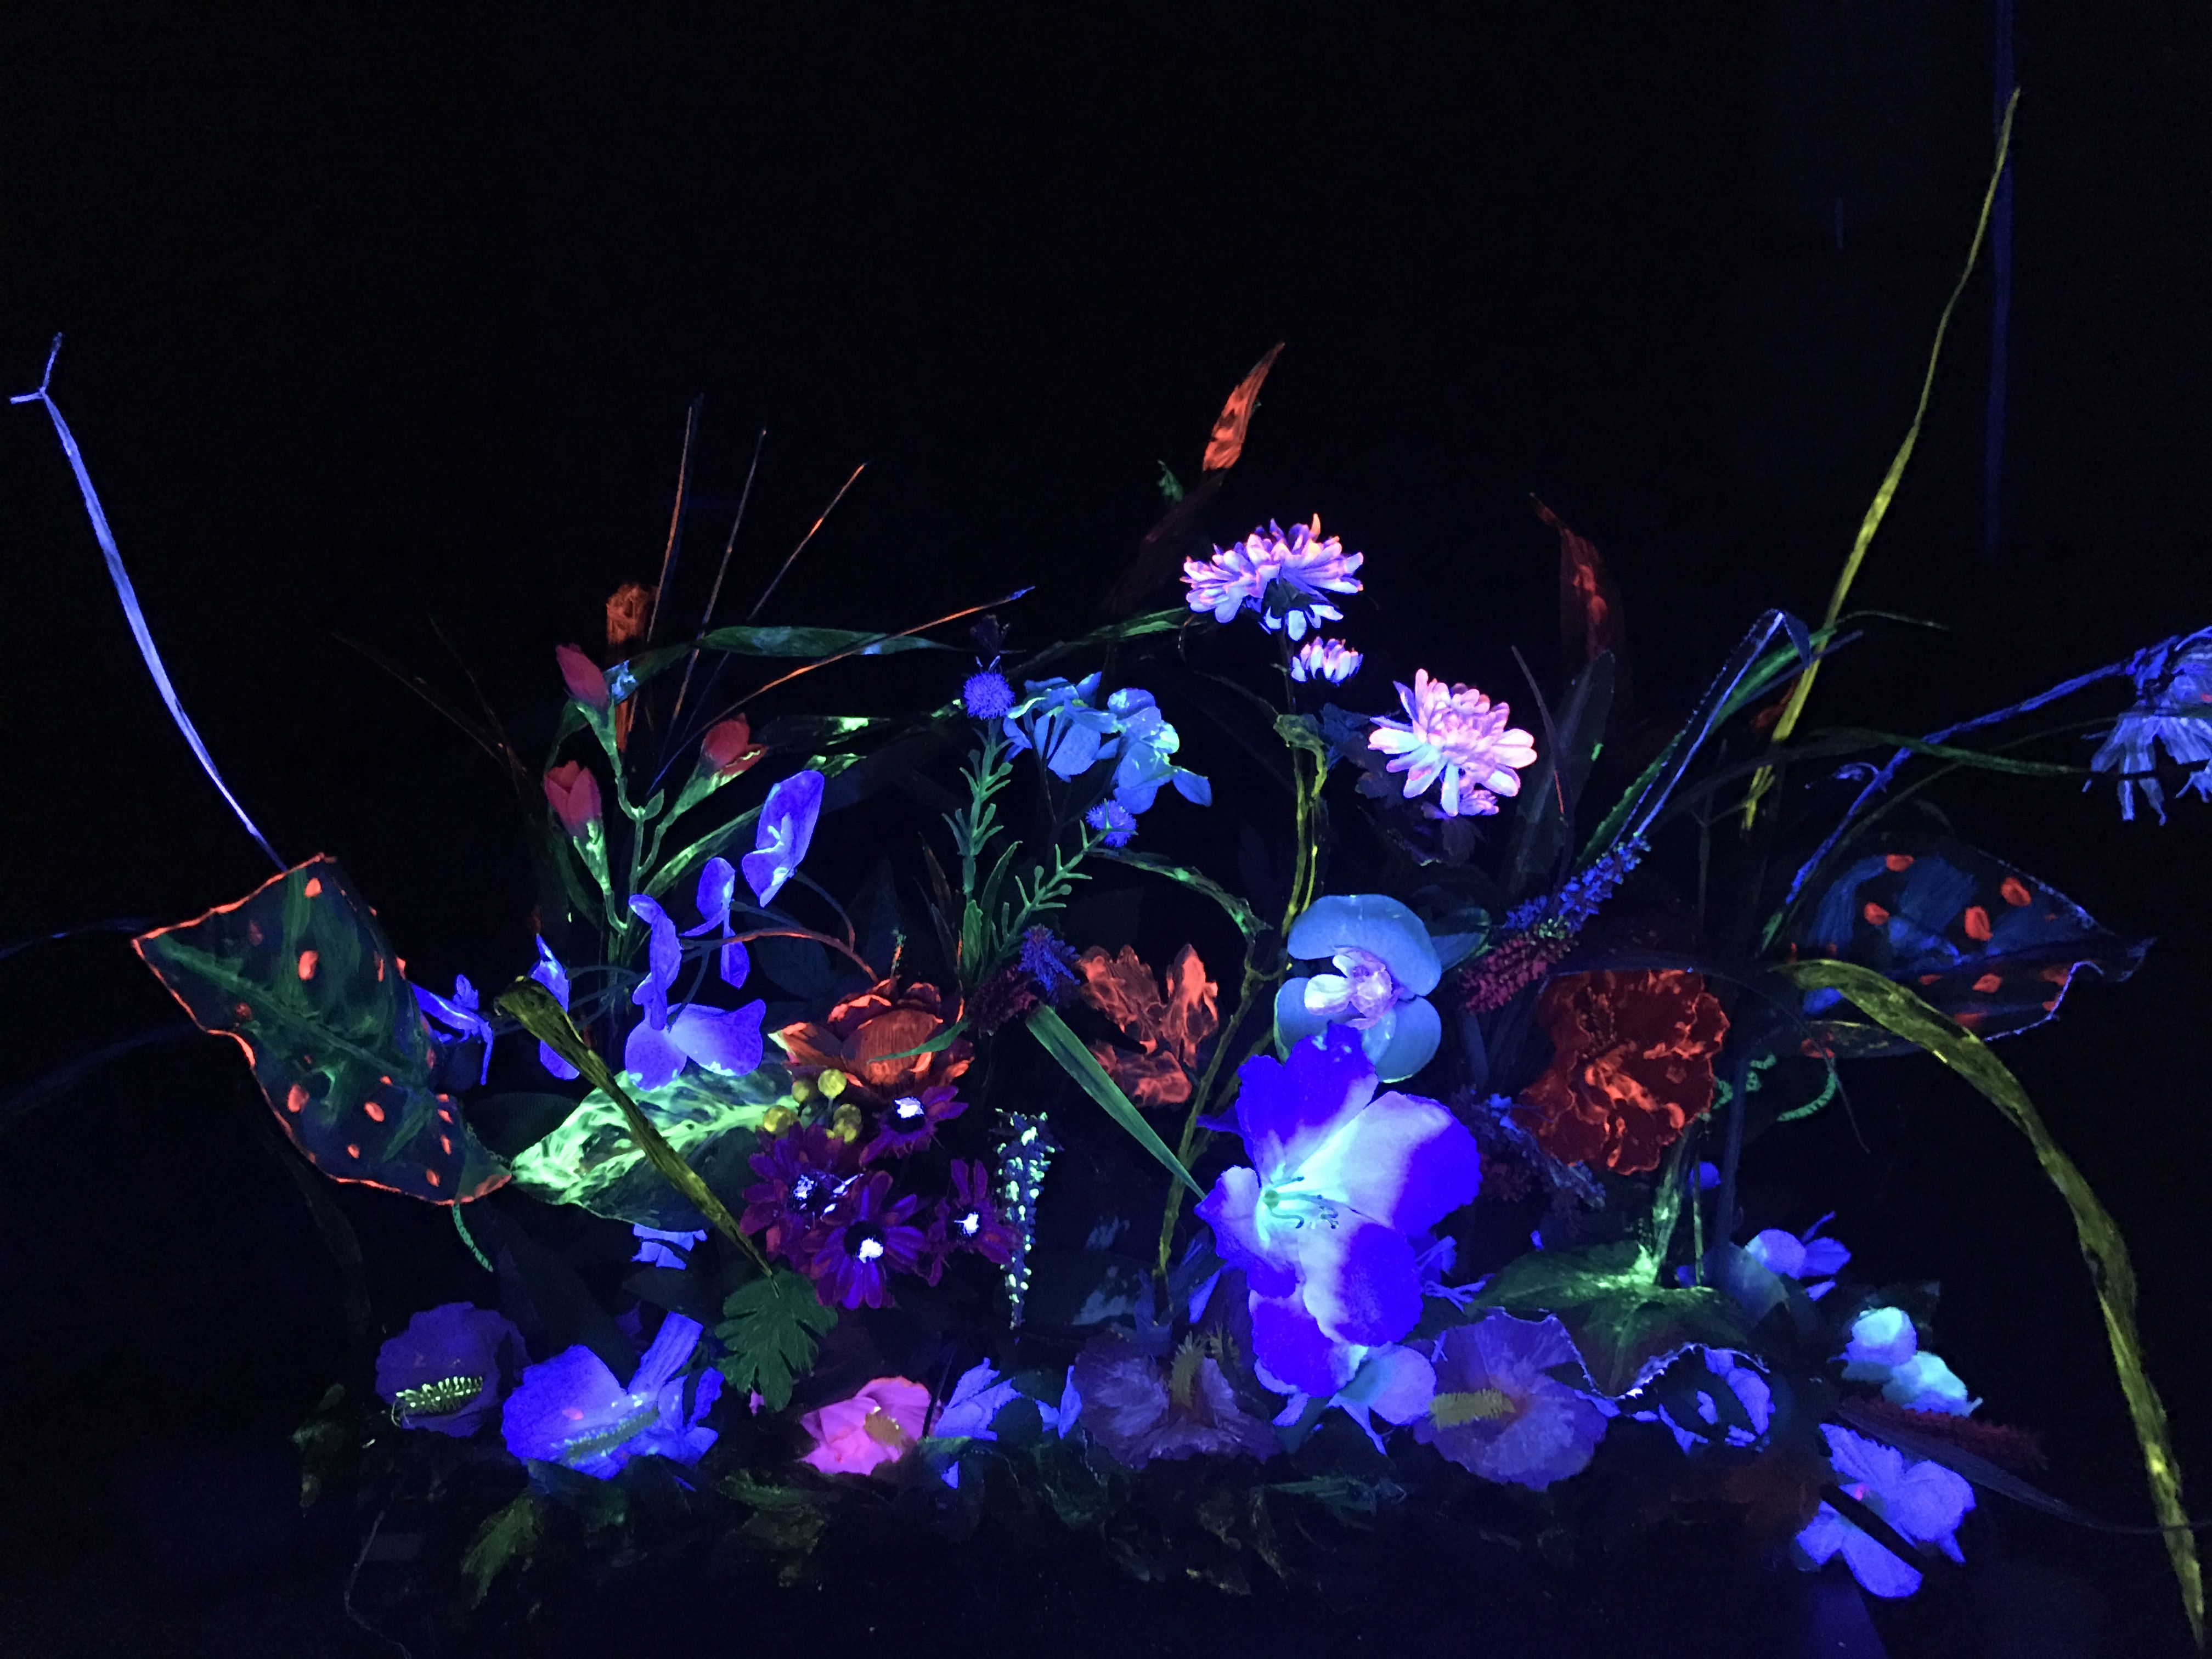 Glowing Black Light Flowers Base Is A 2 X 6 Board With Holes